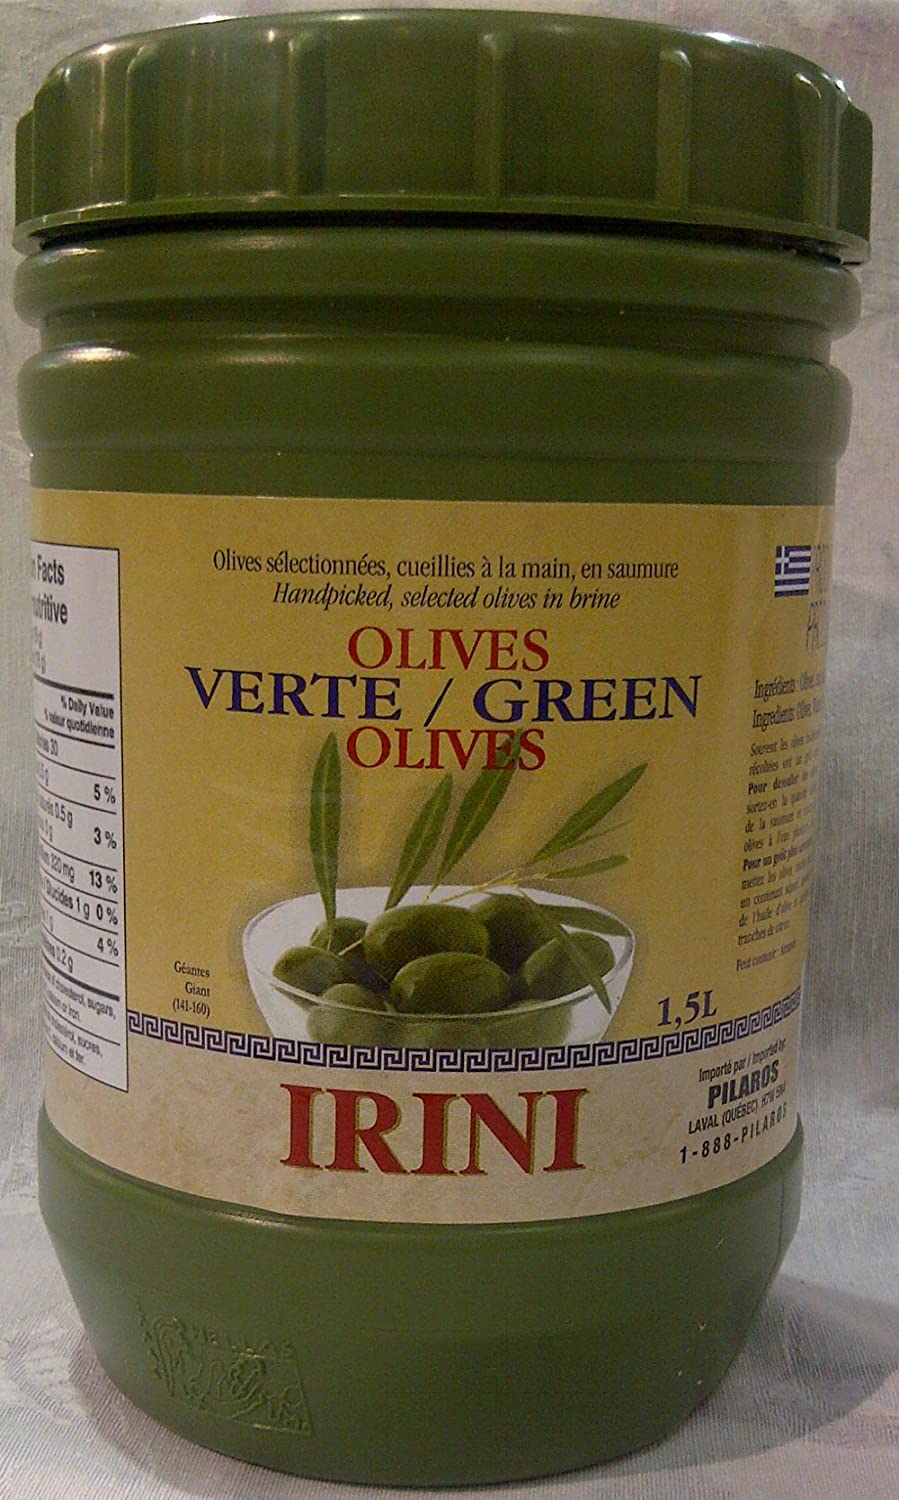 Irini Green Omaha Mall Olives Giant Plaastic container in 1.5L Challenge the lowest price of Japan ☆